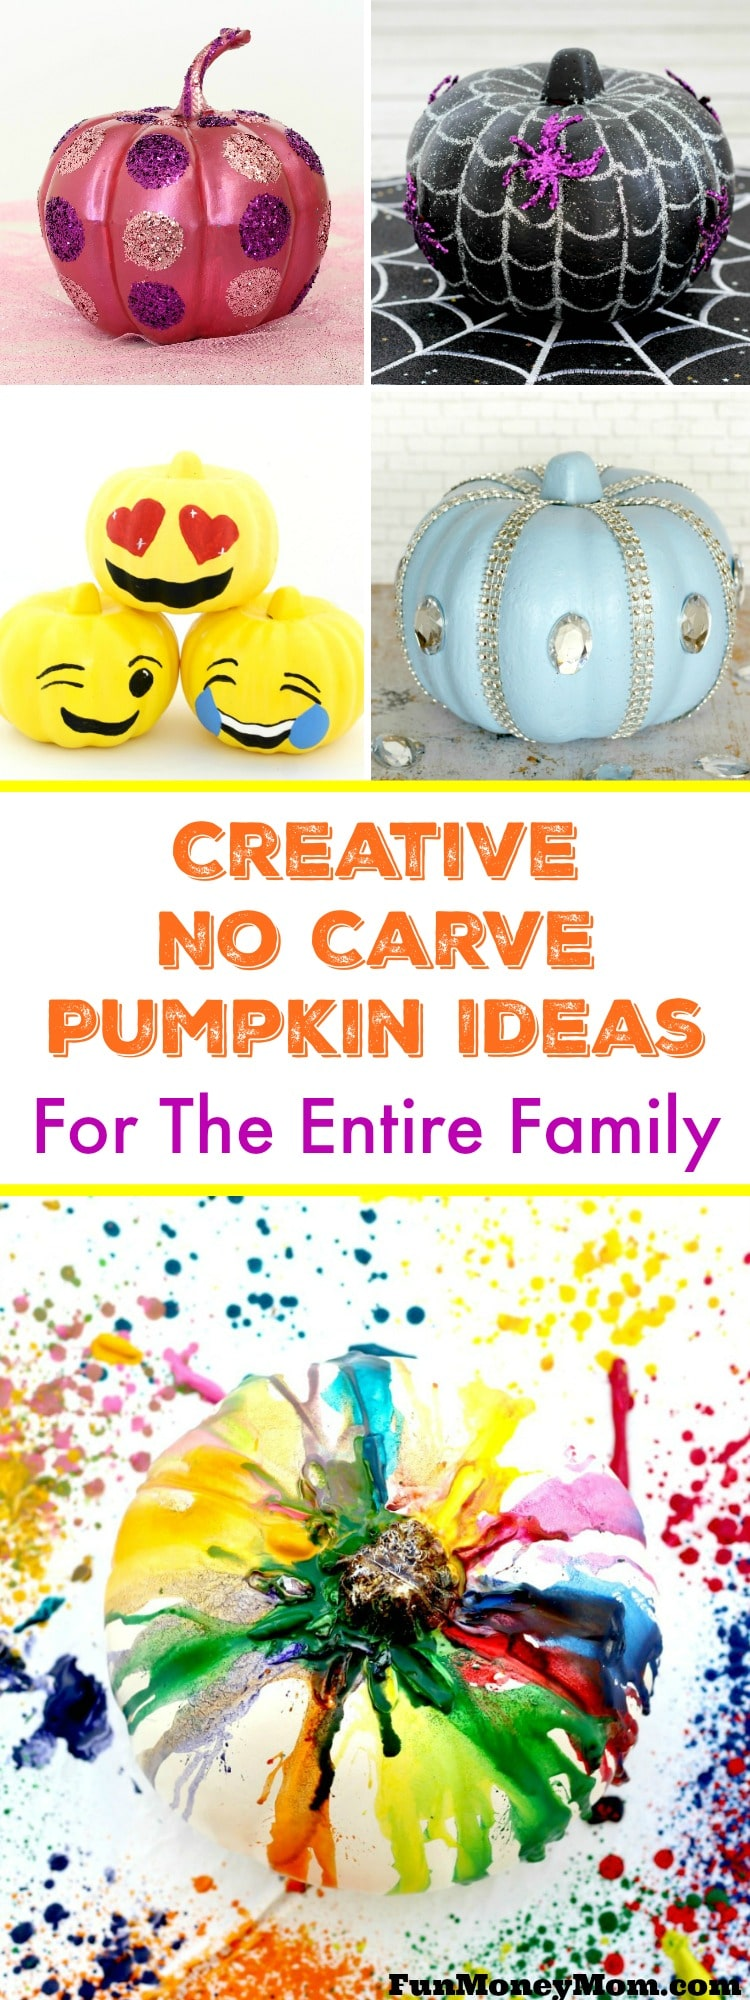 Planning to decorate pumpkins for Halloween? Your family will love these creative (and easy!) no carve pumpkin ideas.